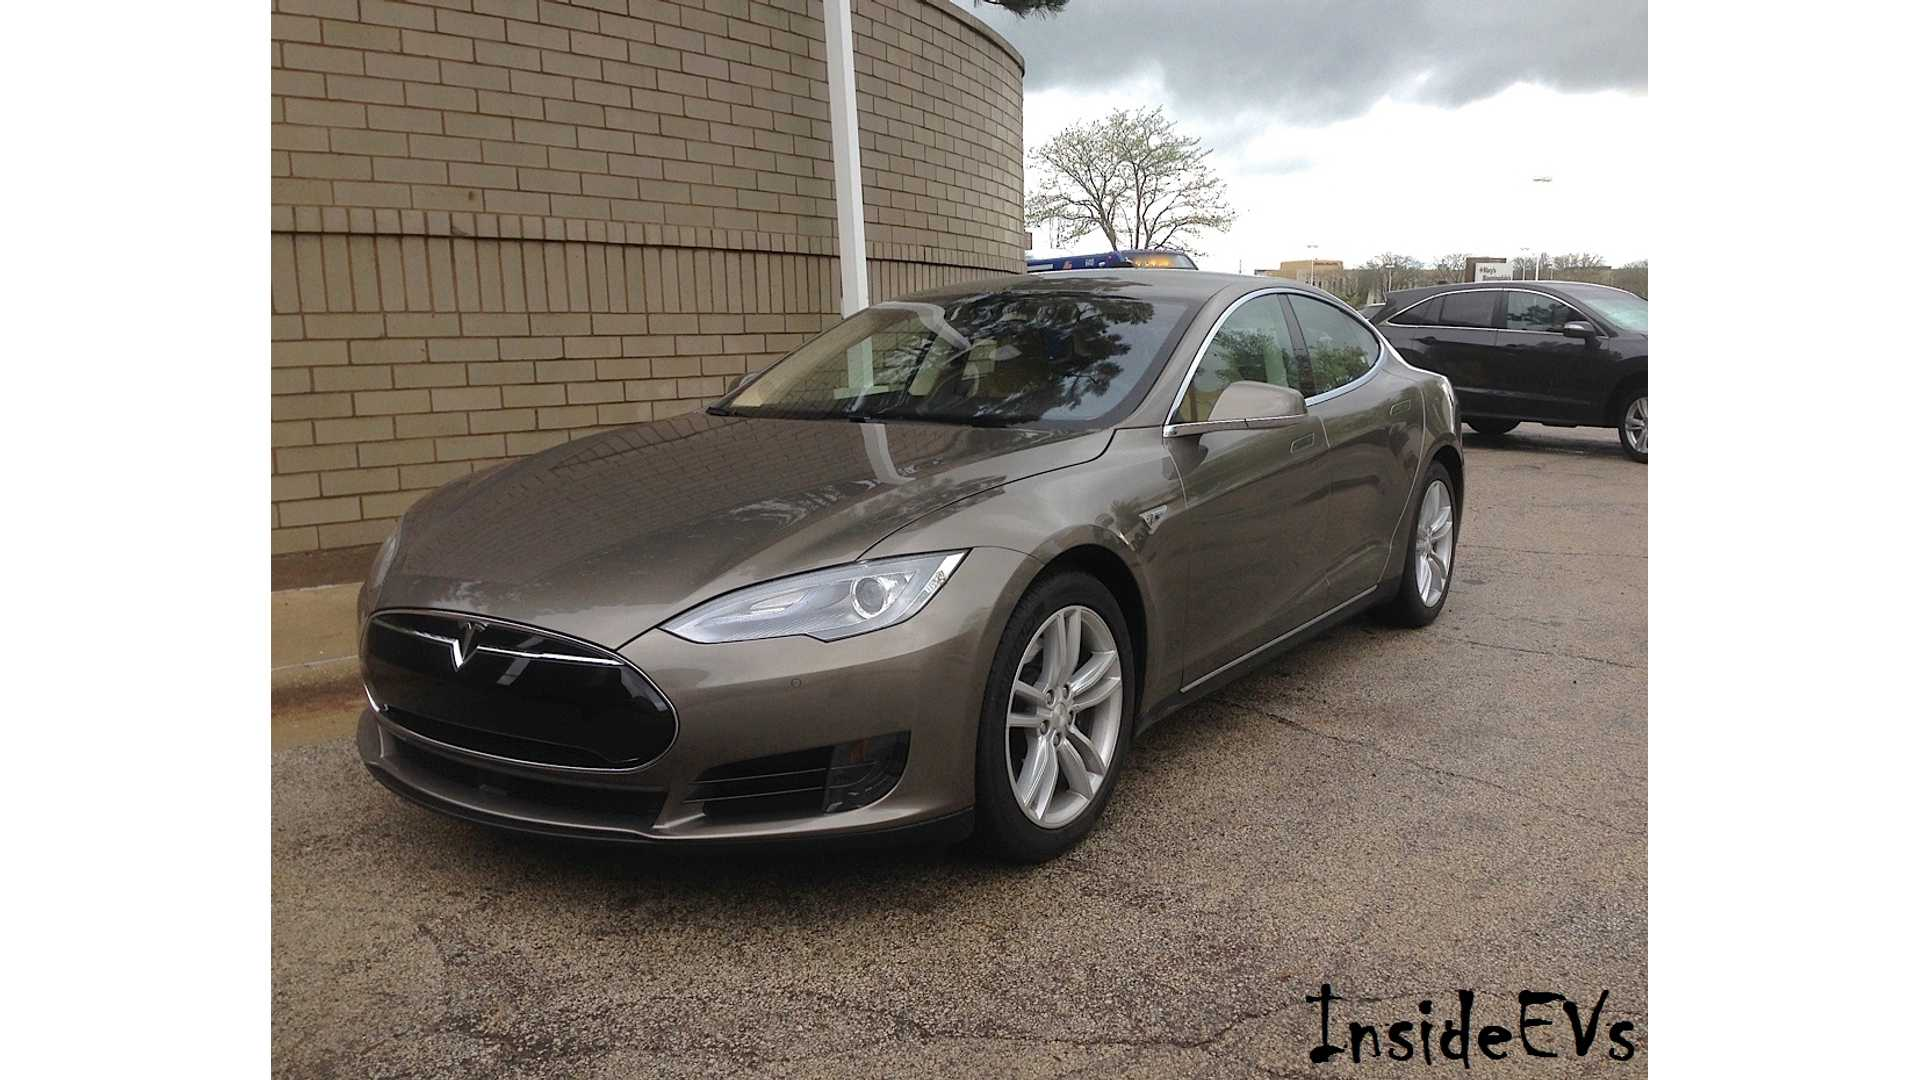 Tesla Model S 70d Review Test Drive 0 60 Mph Close Look At New Anium Metallic Paint